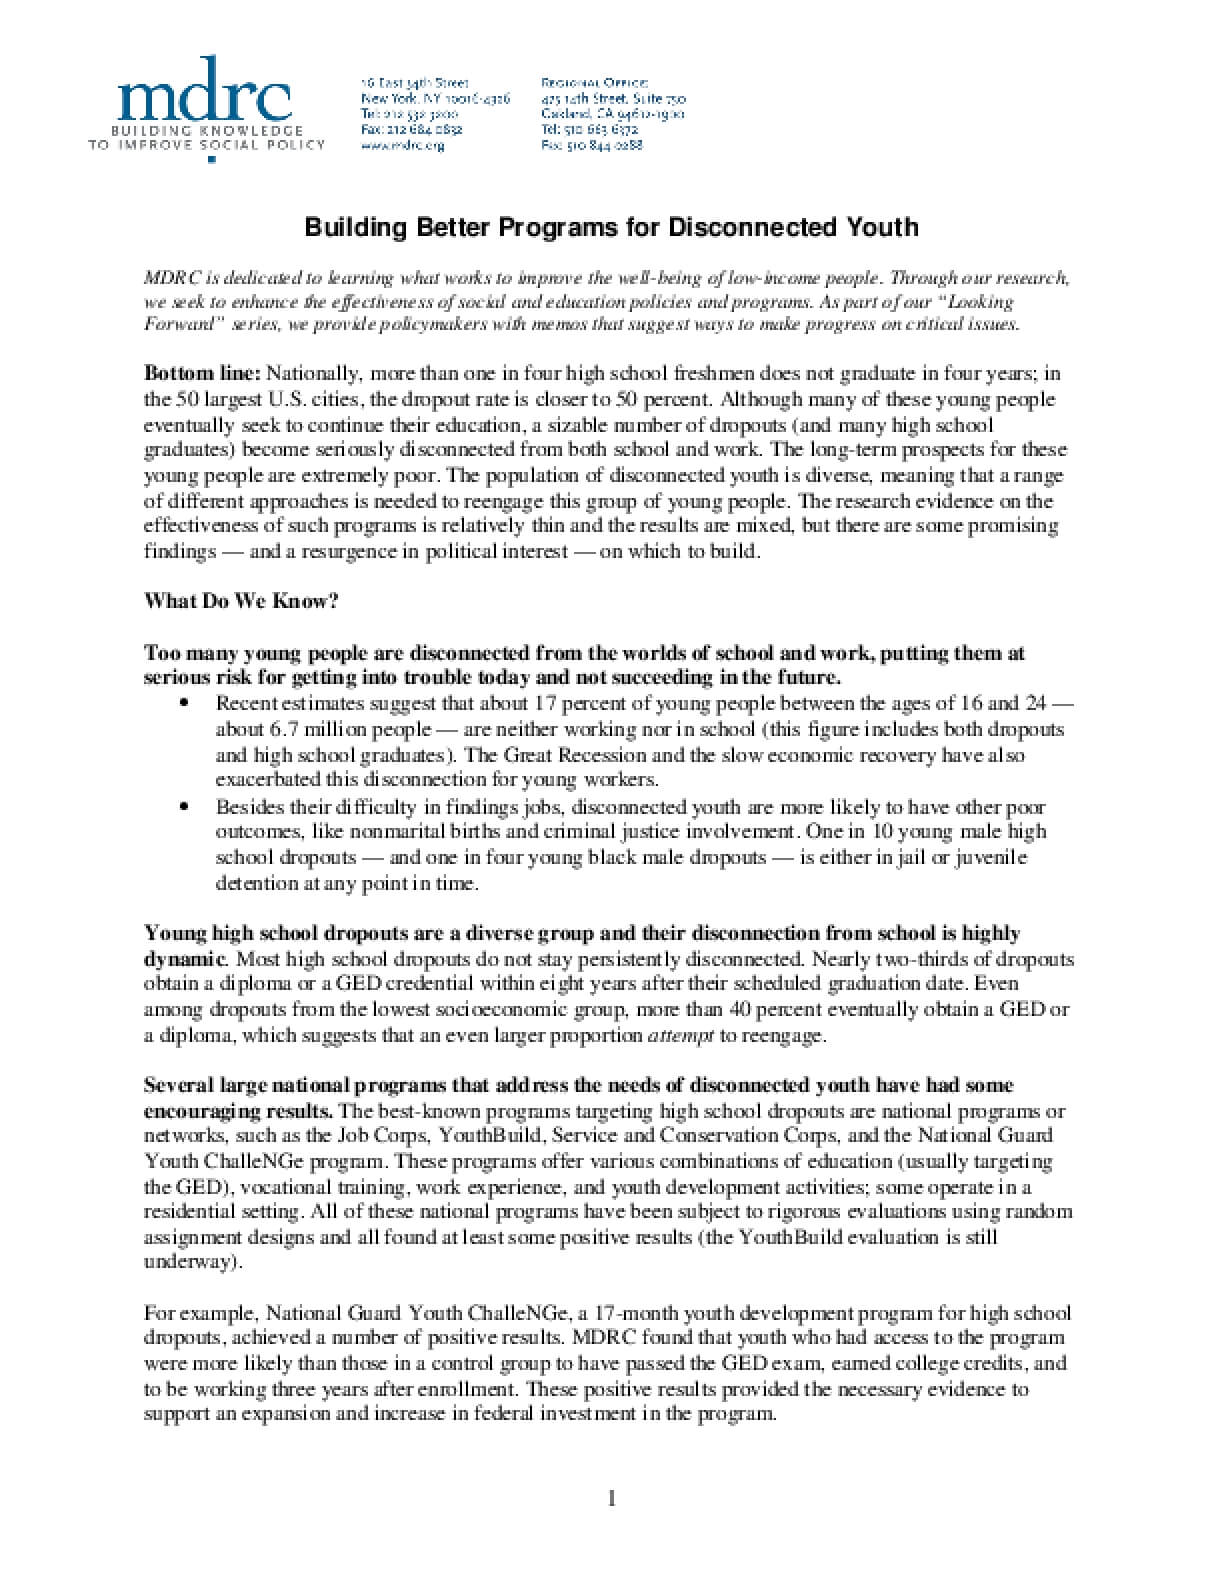 Building Better Programs for Disconnected Youth